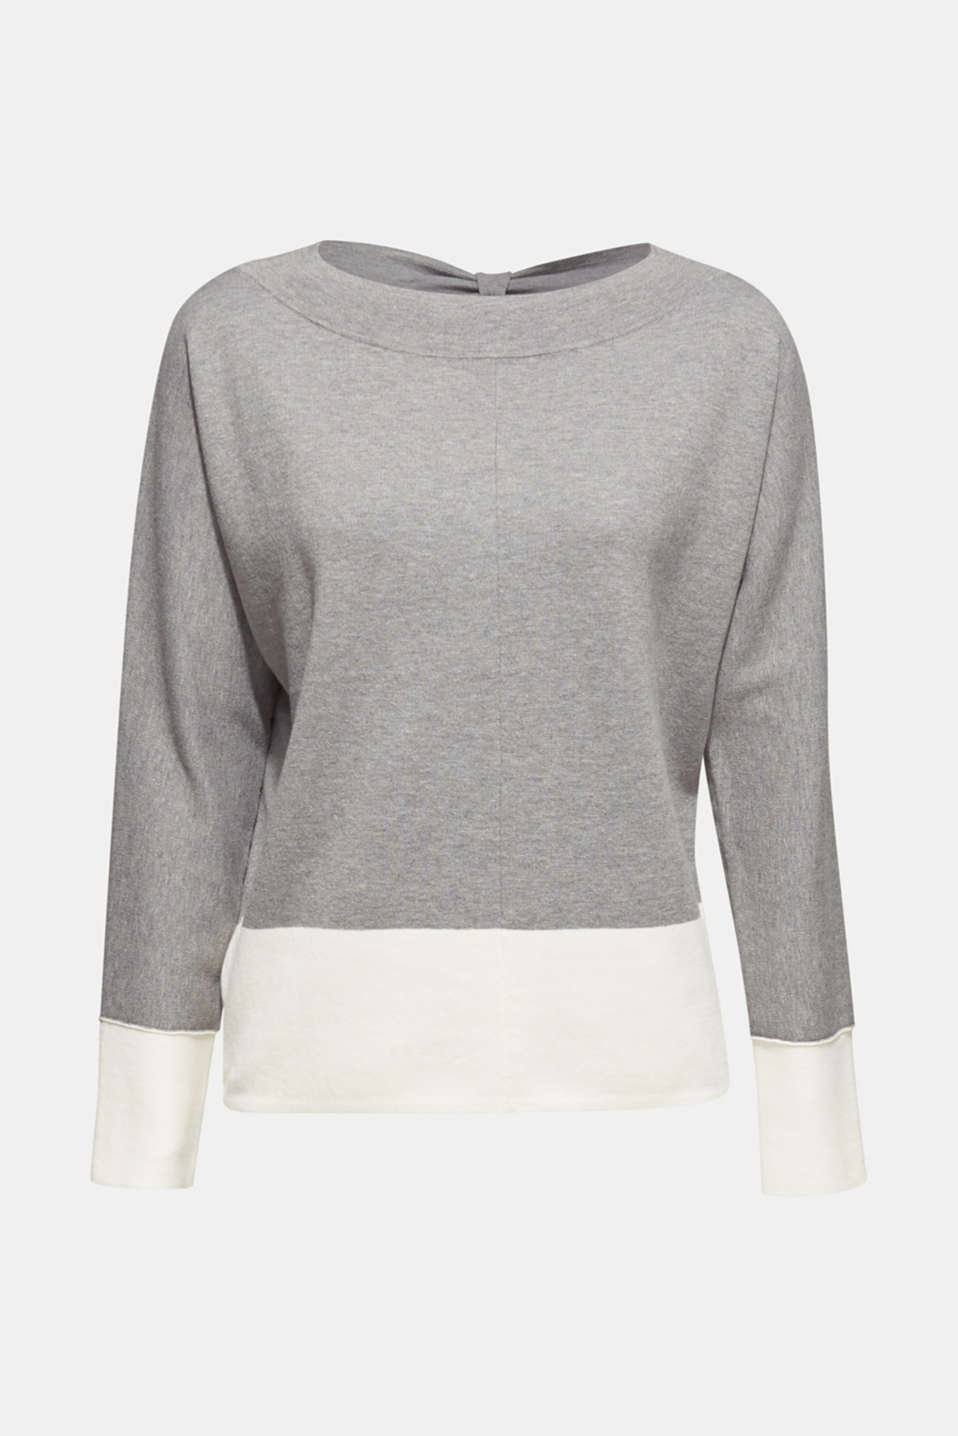 Esprit - Stretch jumper with batwing sleeves